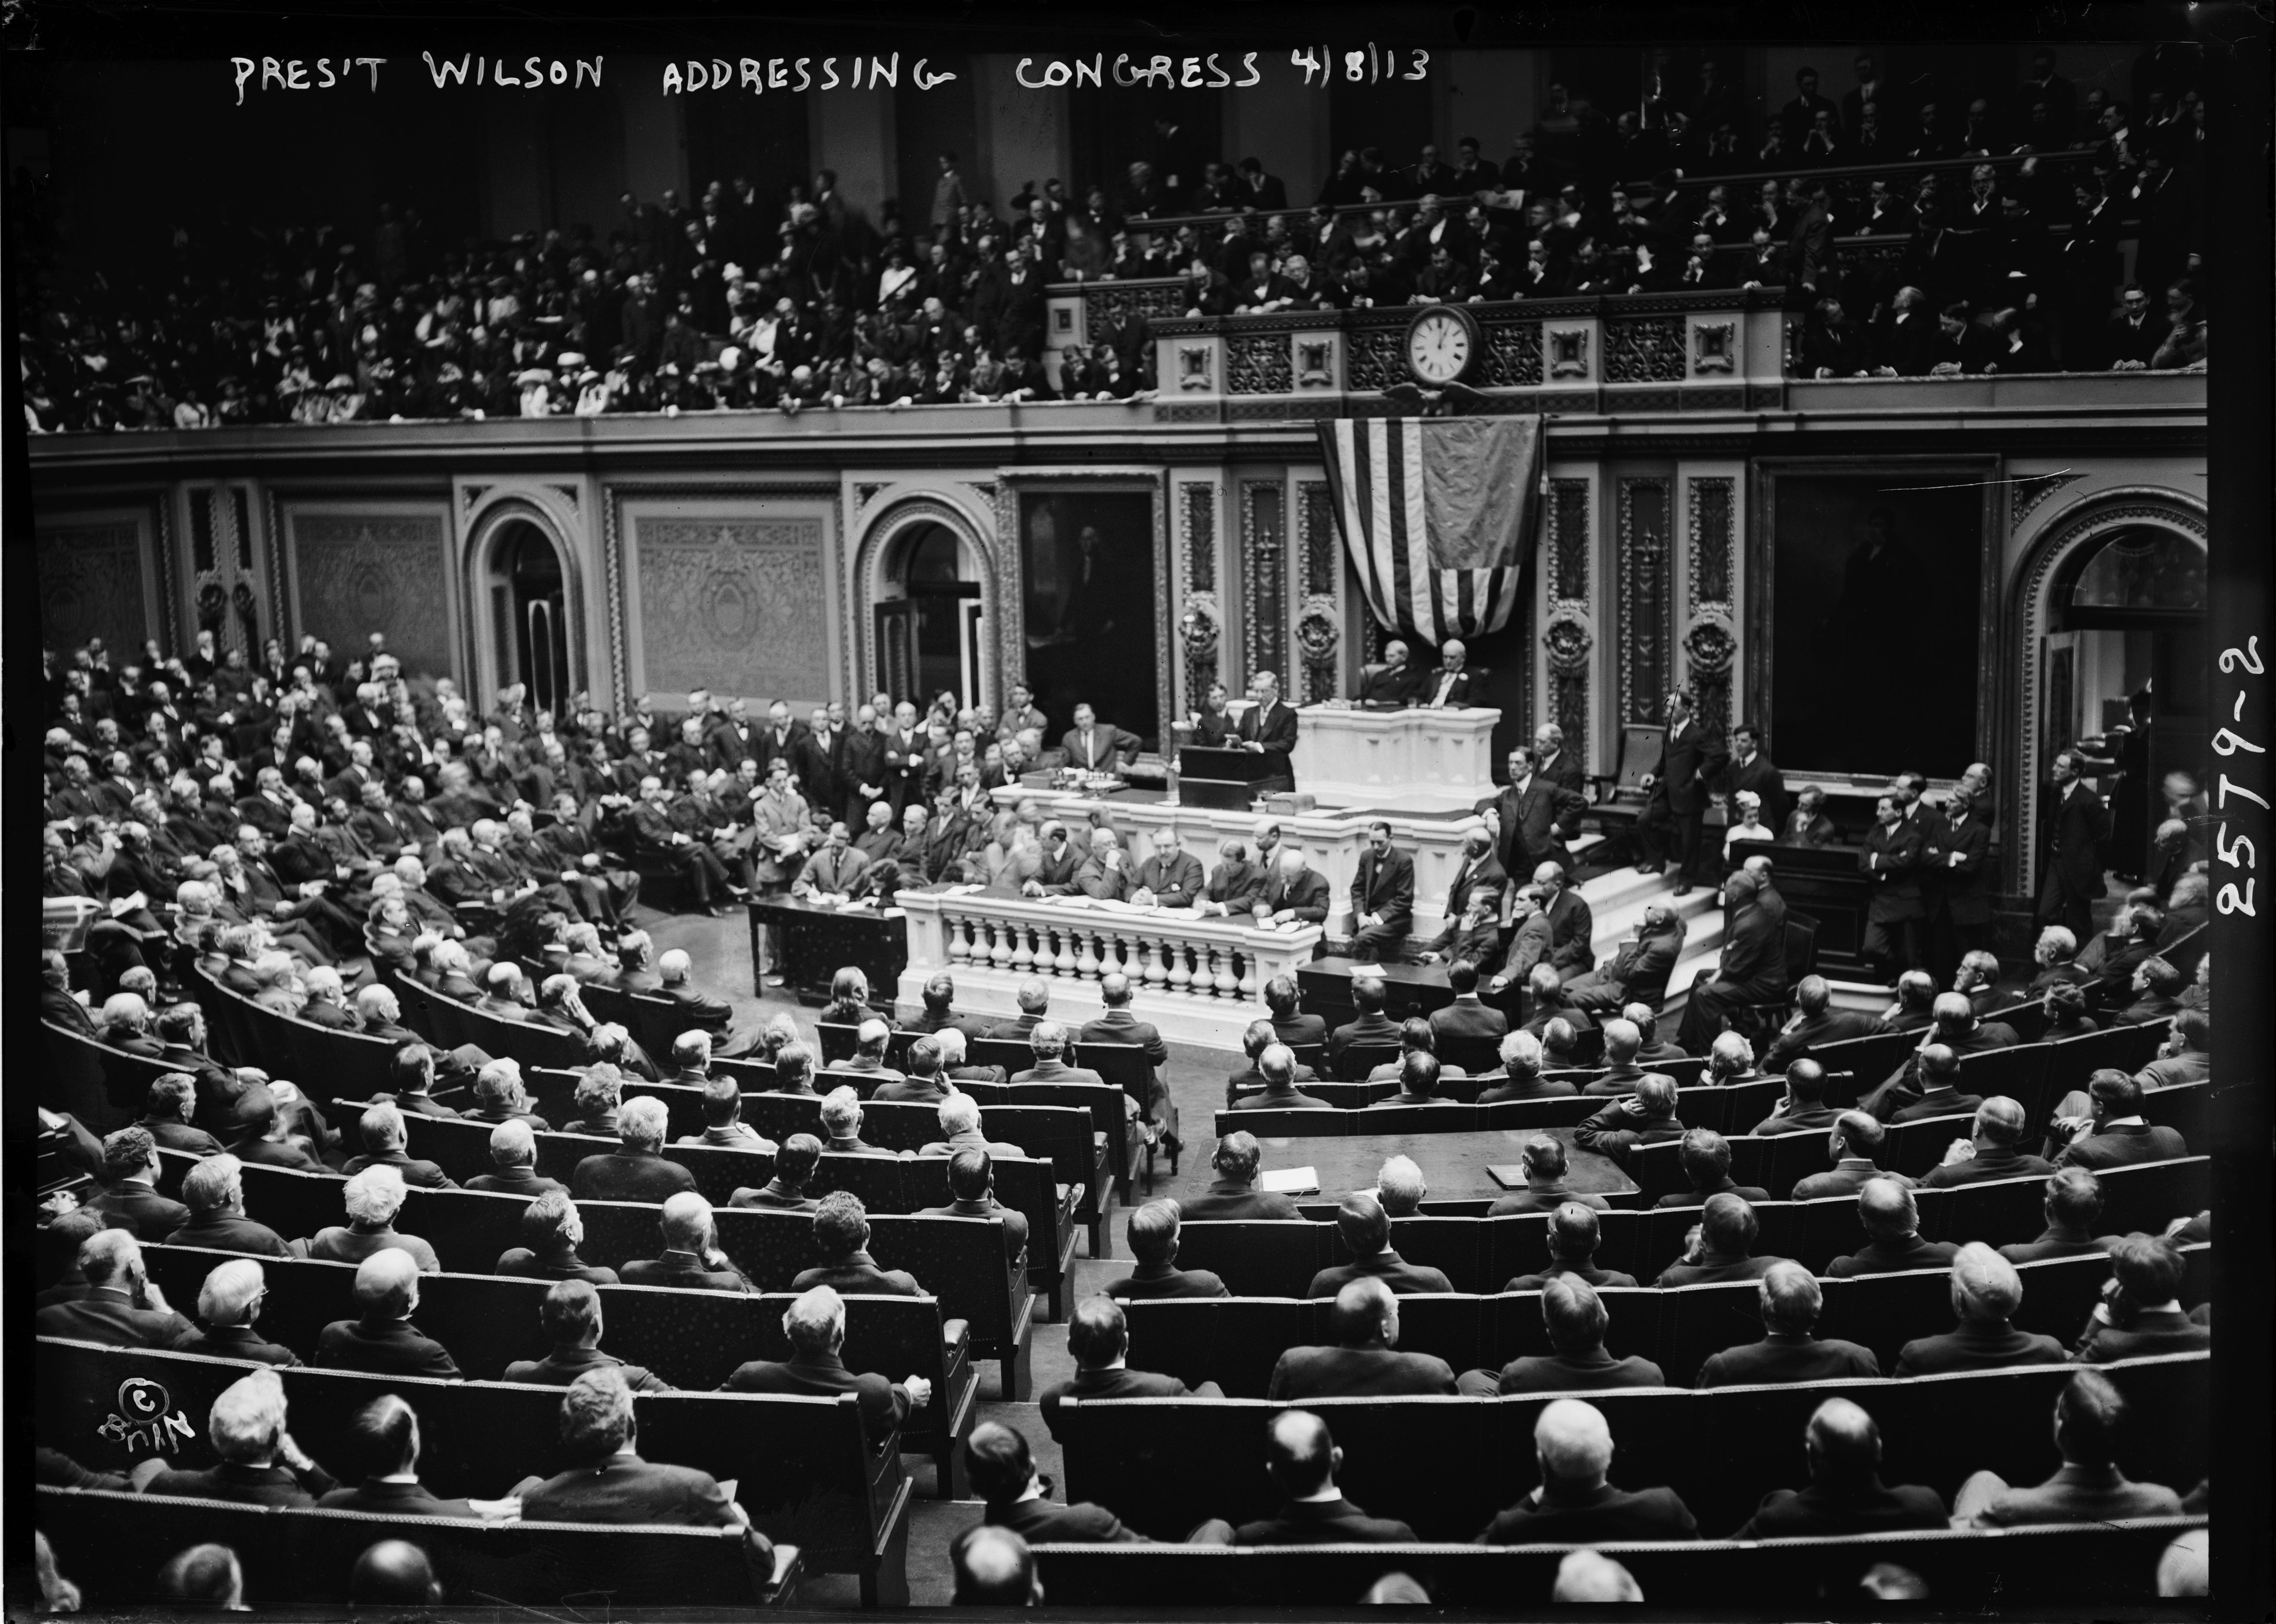 historic picture of President Wilson addressing congress